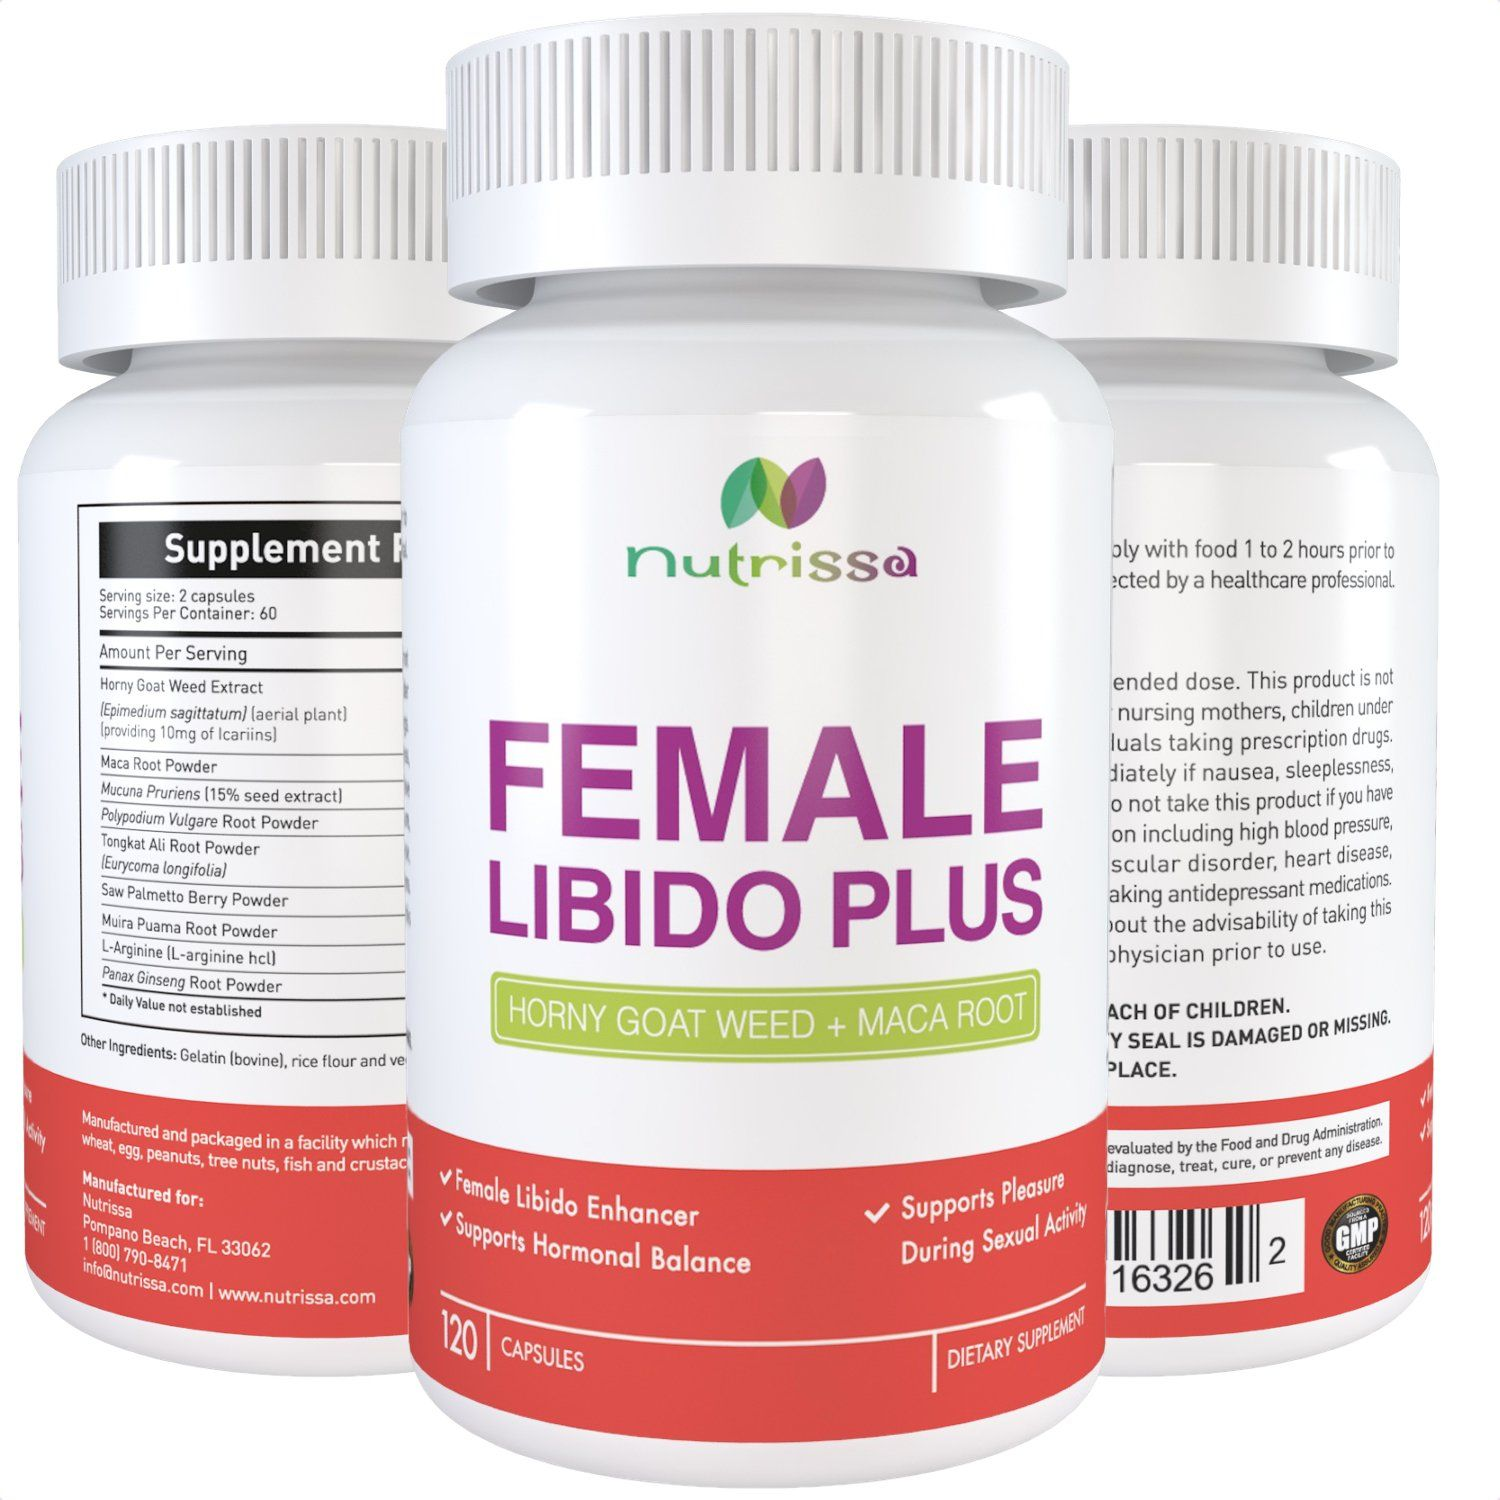 FEMALE LIBIDO PLUS - 120 Capsules - Horny Goat Weed (1000 mg) + Maca Root  (250 mg); Herbal Complex (9 Ingredients) For Women that Helps Increase Sex  Drive ...